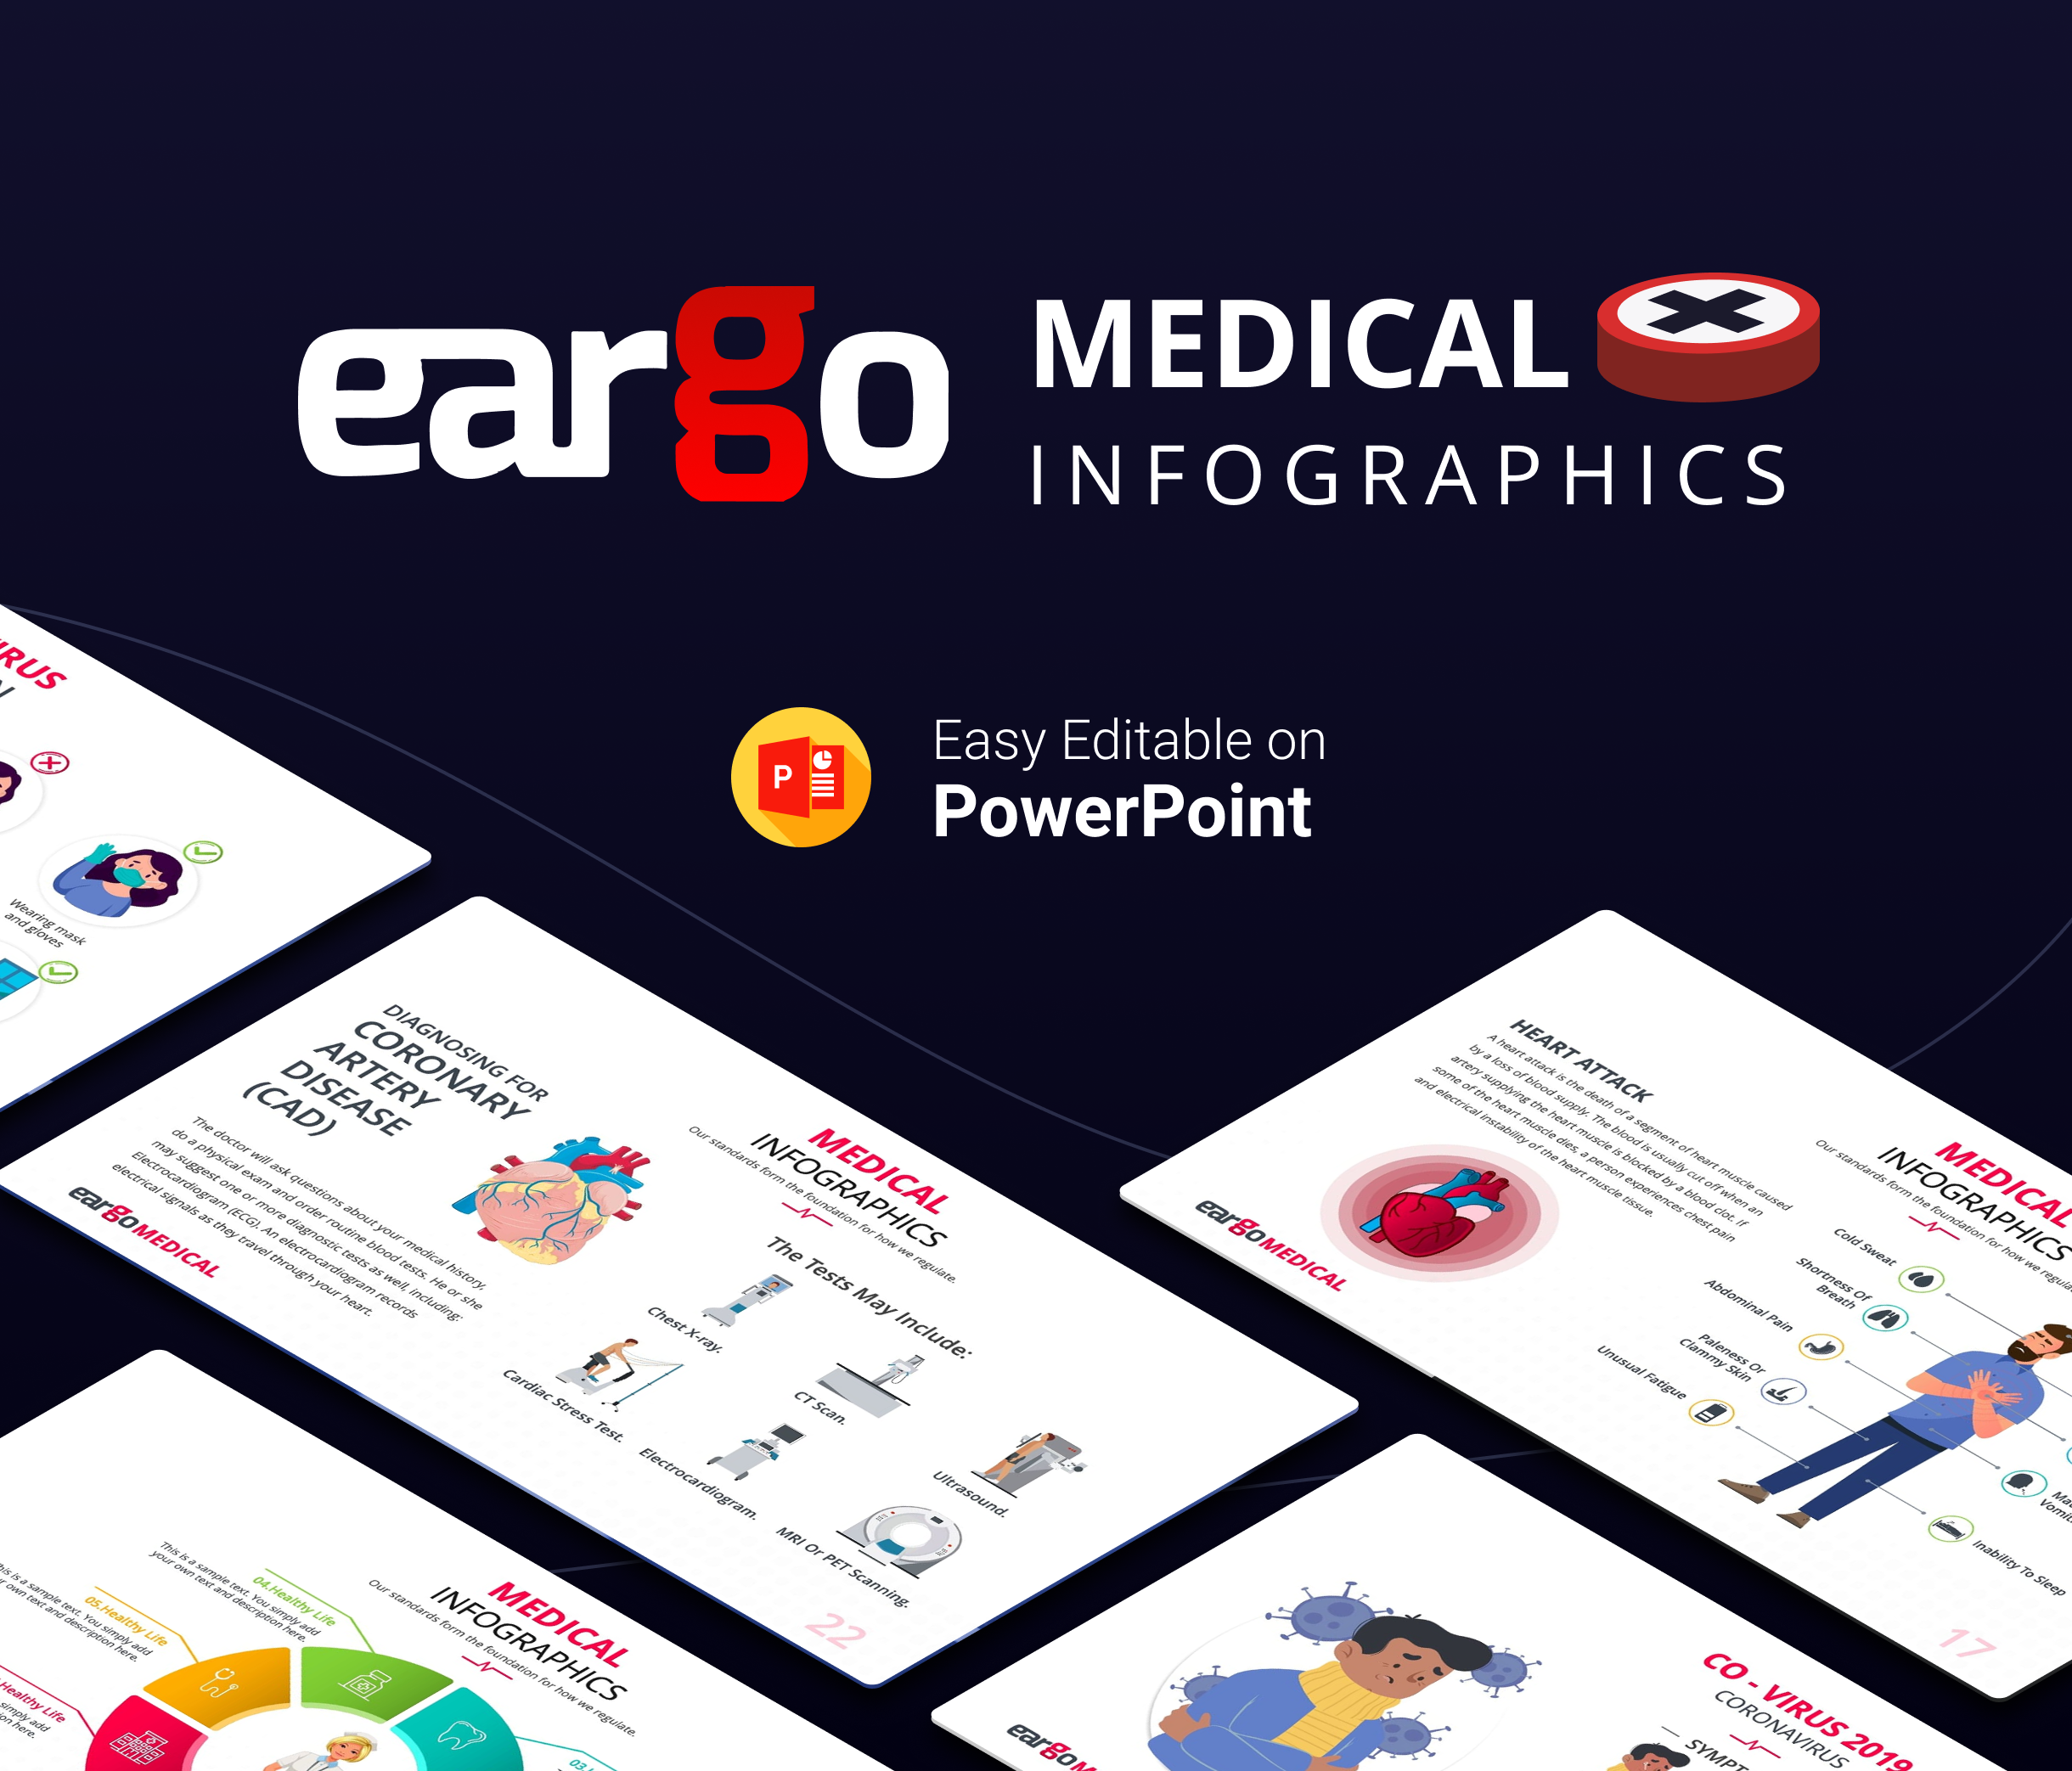 Eargo Medical Infographic Presentation